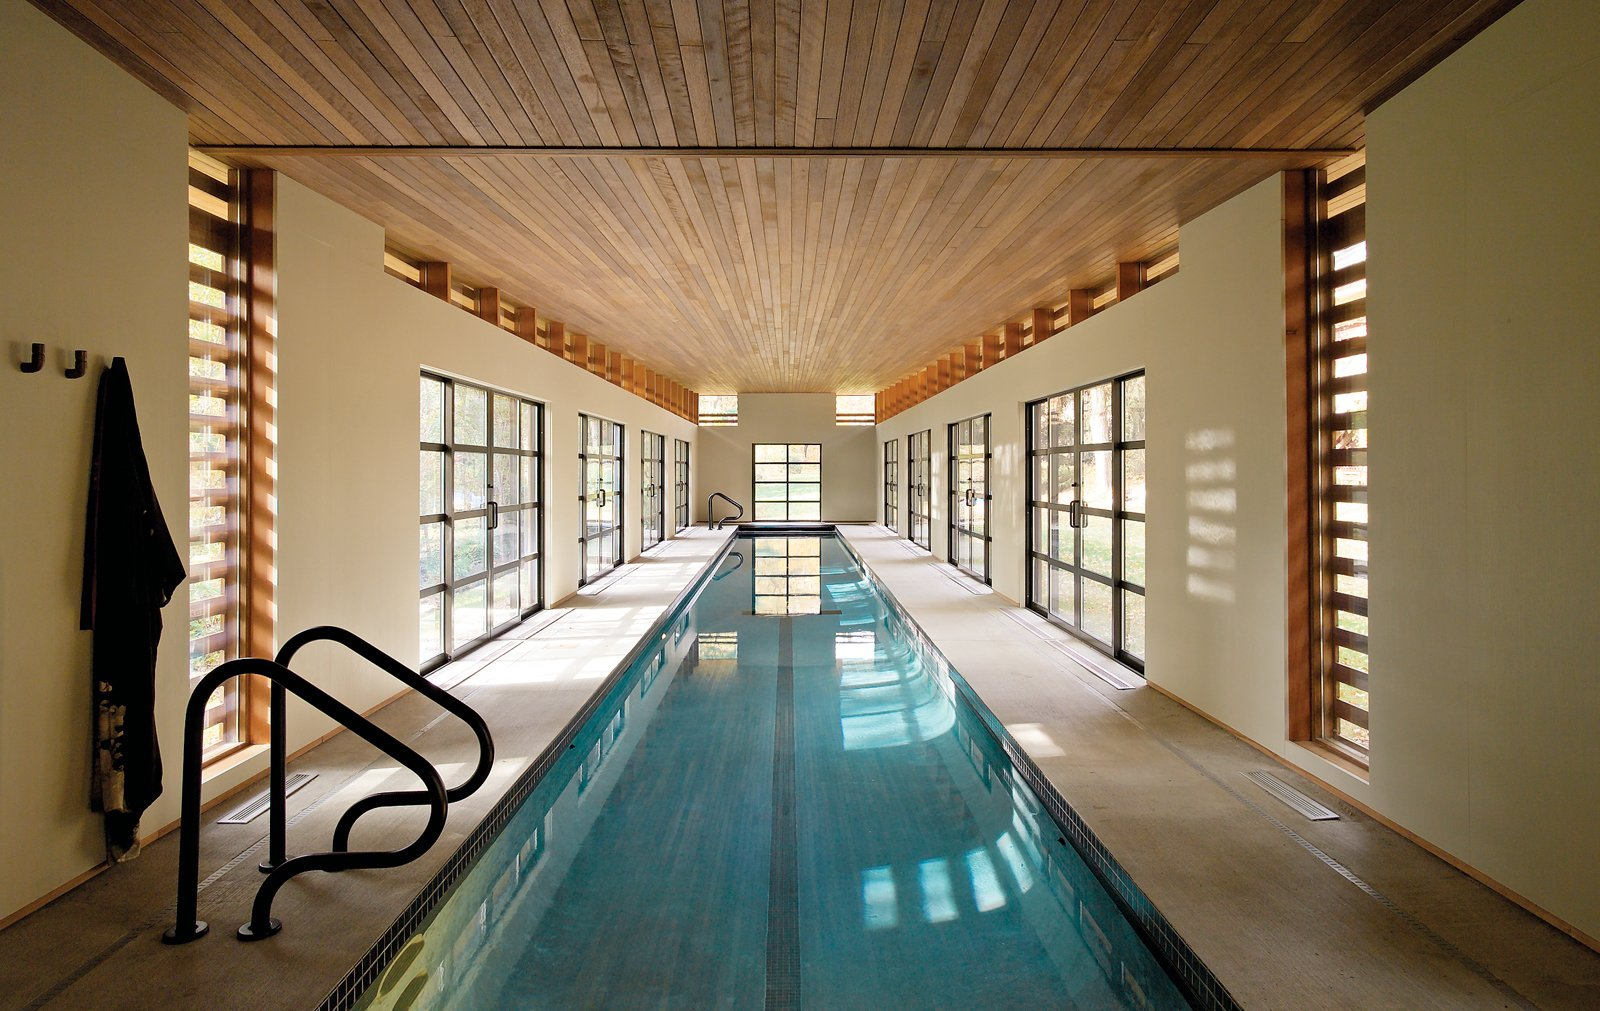 Outdoor, Large Pools, Tubs, Shower, and Swimming Pools, Tubs, Shower Competitive swimmer Sydne Didier commissioned Austin Design Inc. to create a 102-foot-long pool house in a freestanding structure behind her Amherst, Massachusetts, house.  Photo 1 of 3 in Skinny Dip